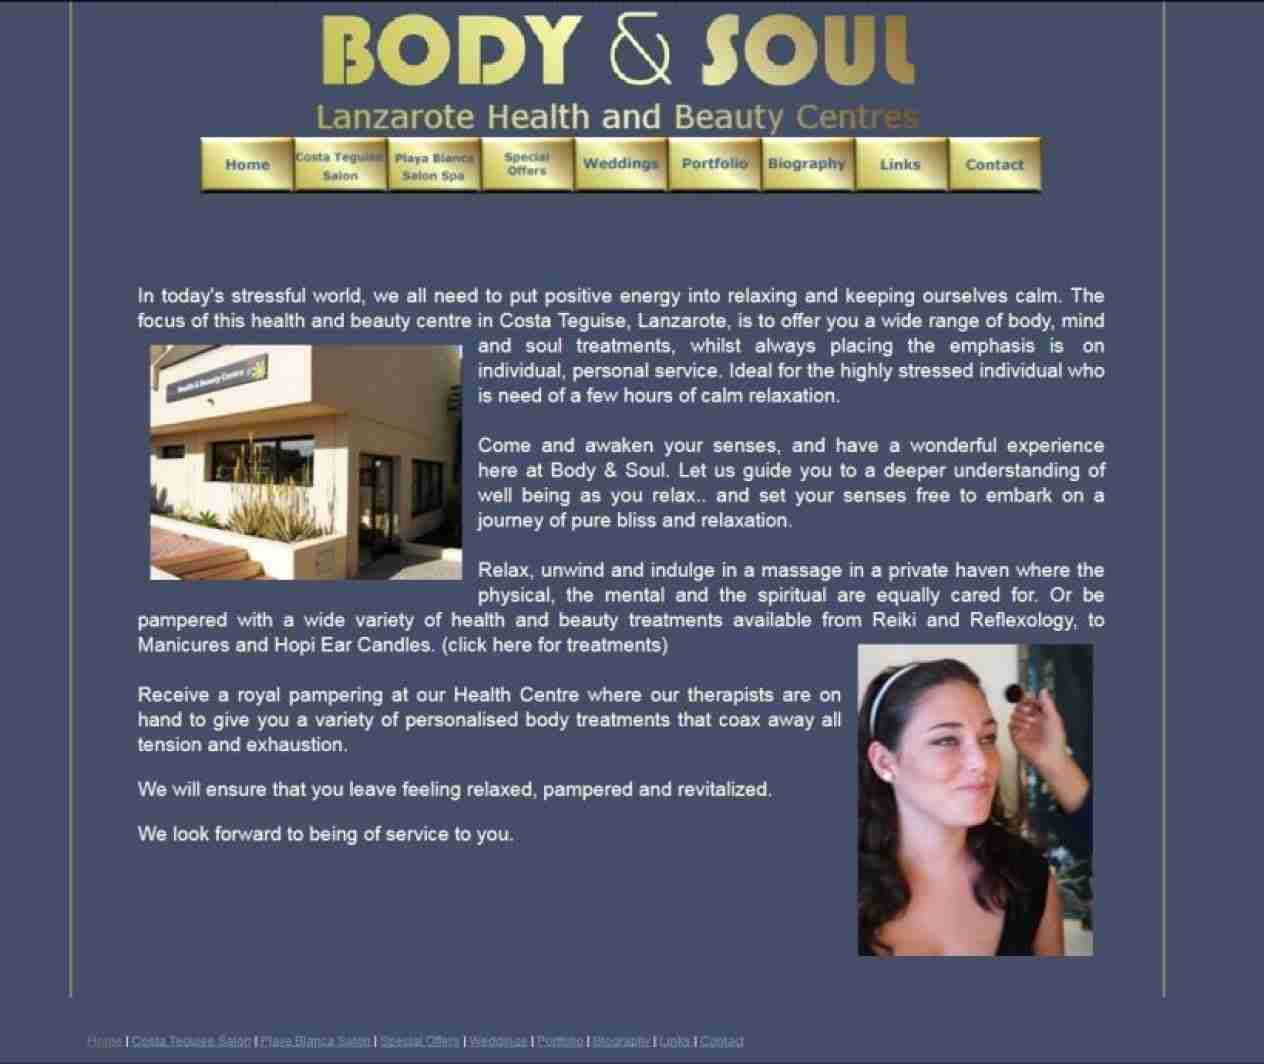 Body and Soul Lanzarote